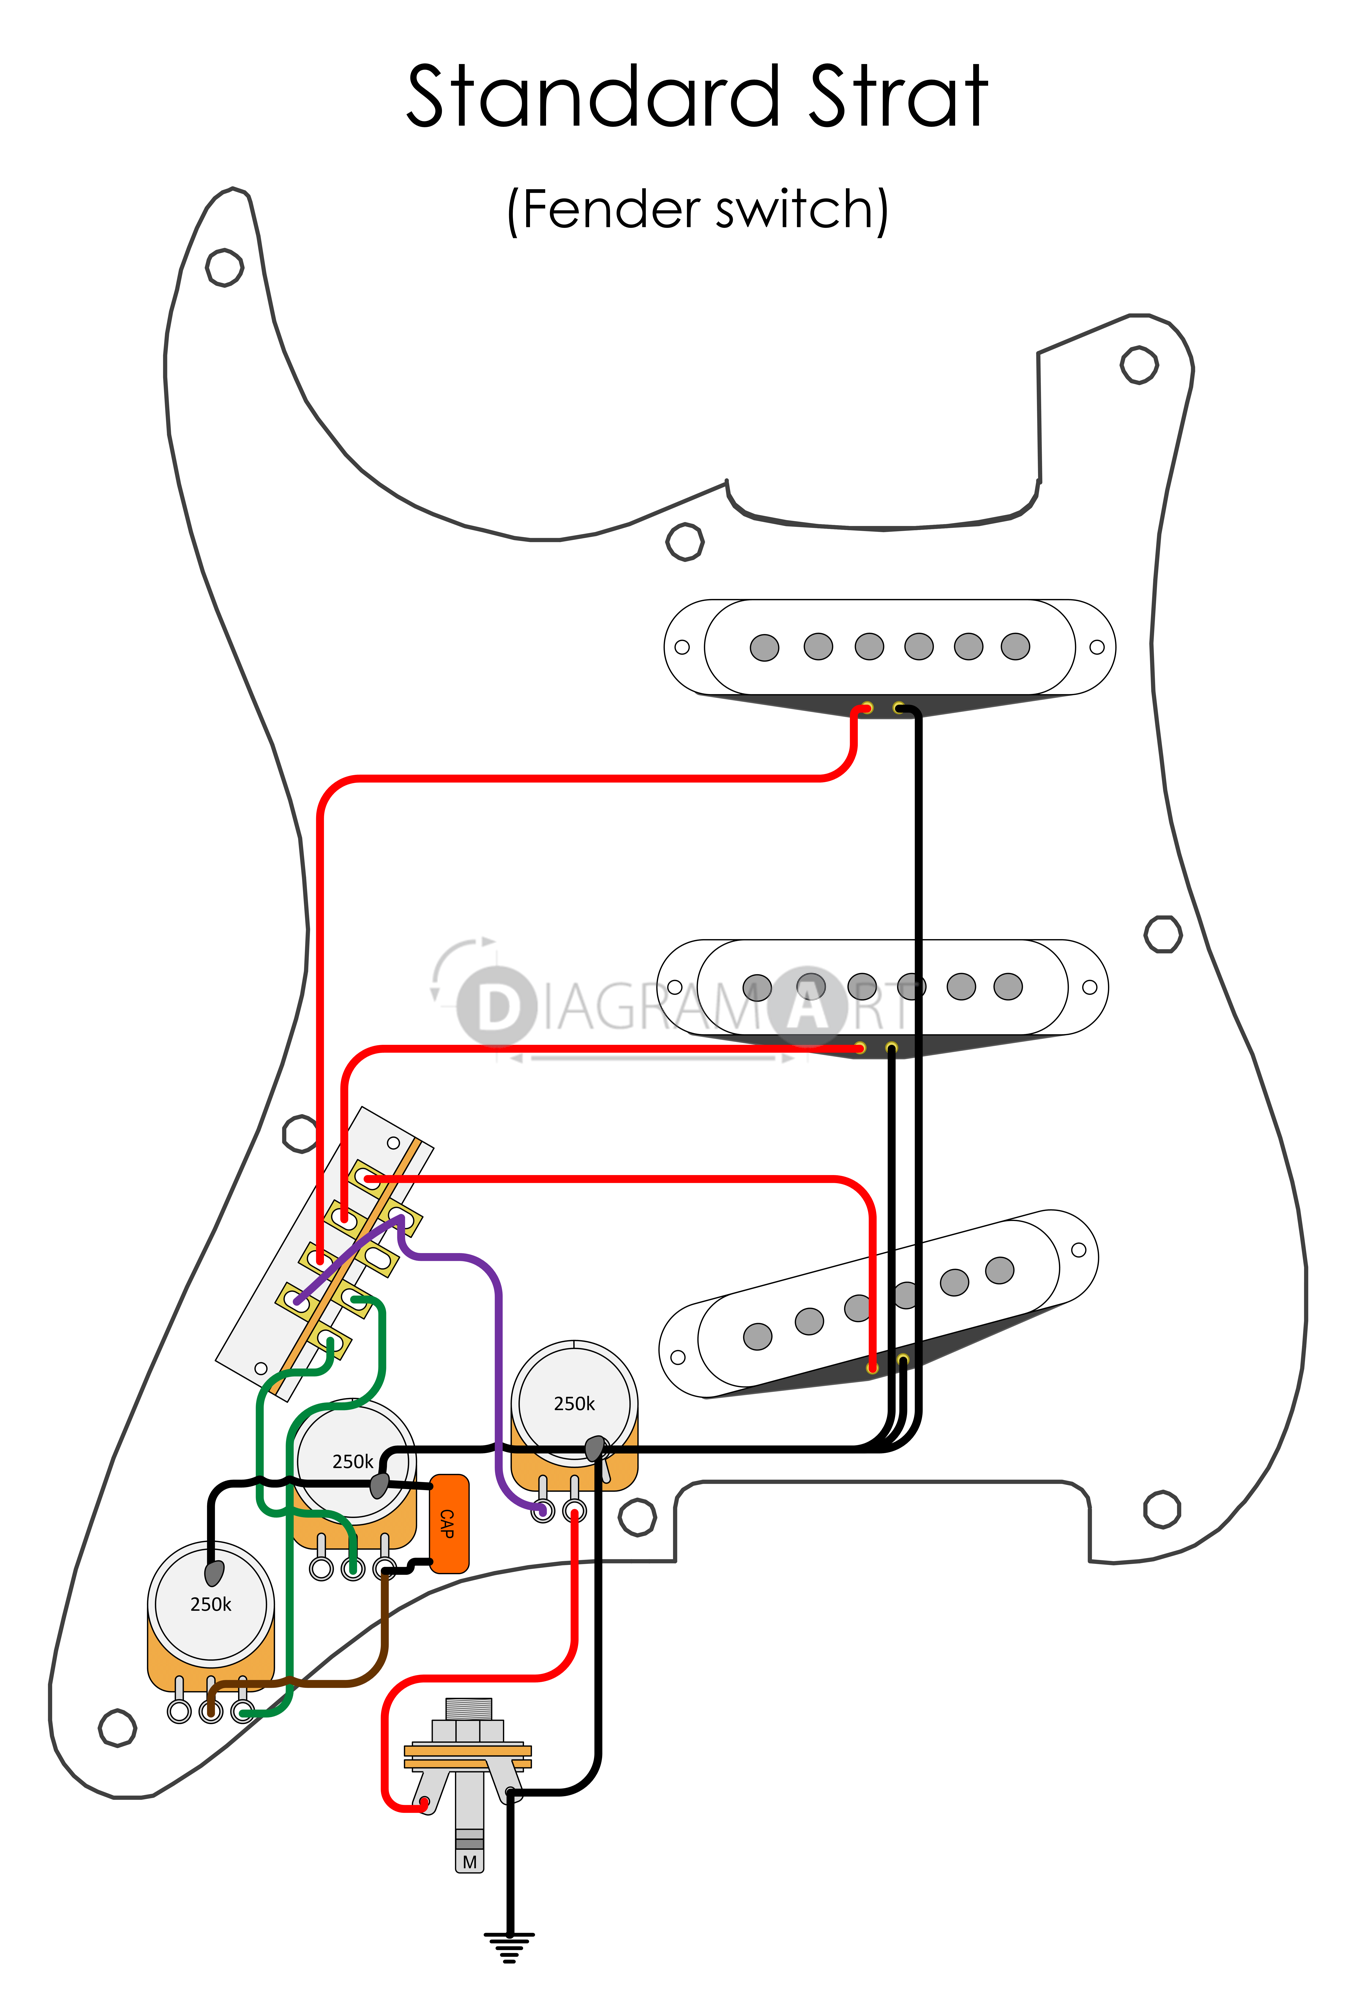 electric guitar wiring standard strat fender switch electric rh diagramart com fender standard strat wiring diagram fender standard wiring